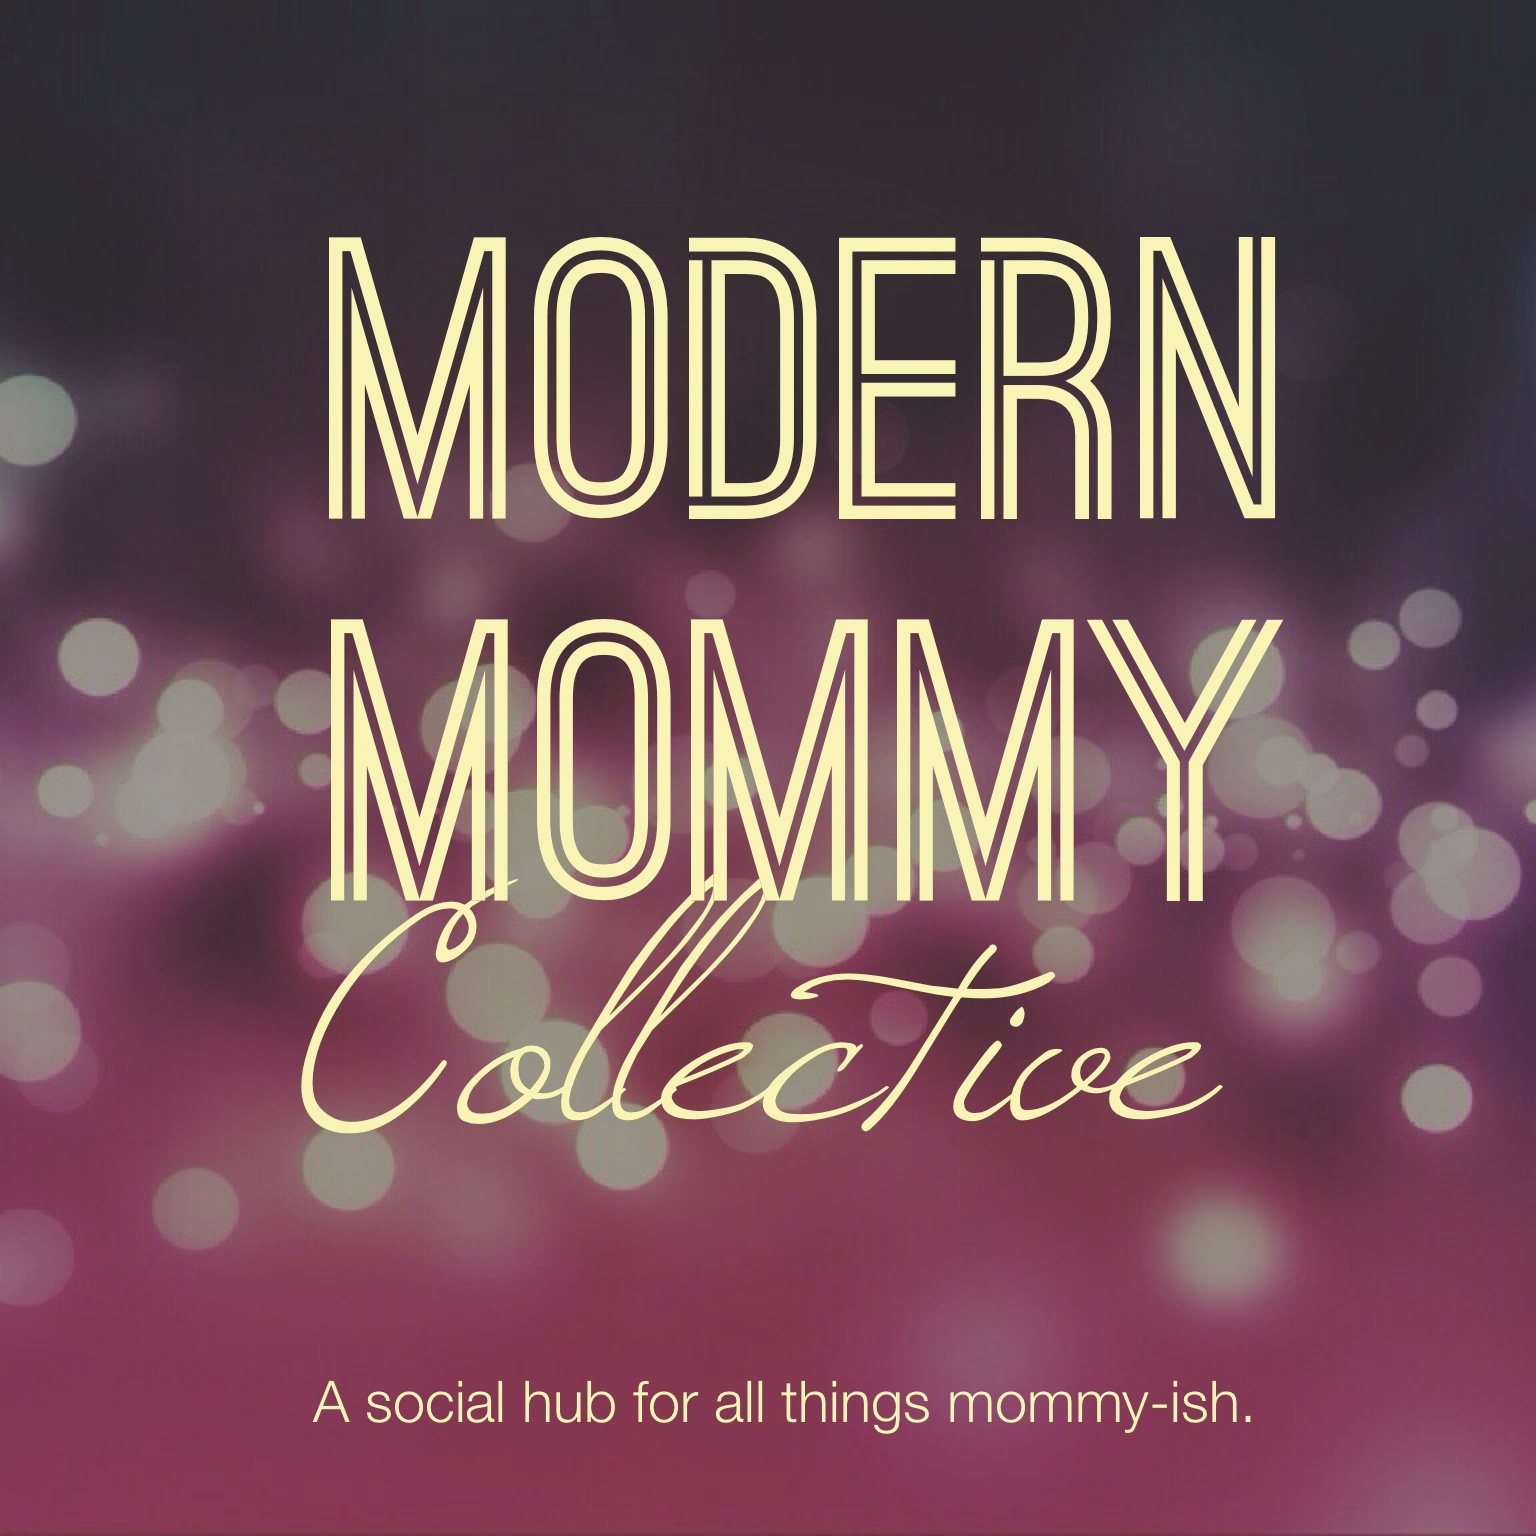 The Modern Mommy Collective